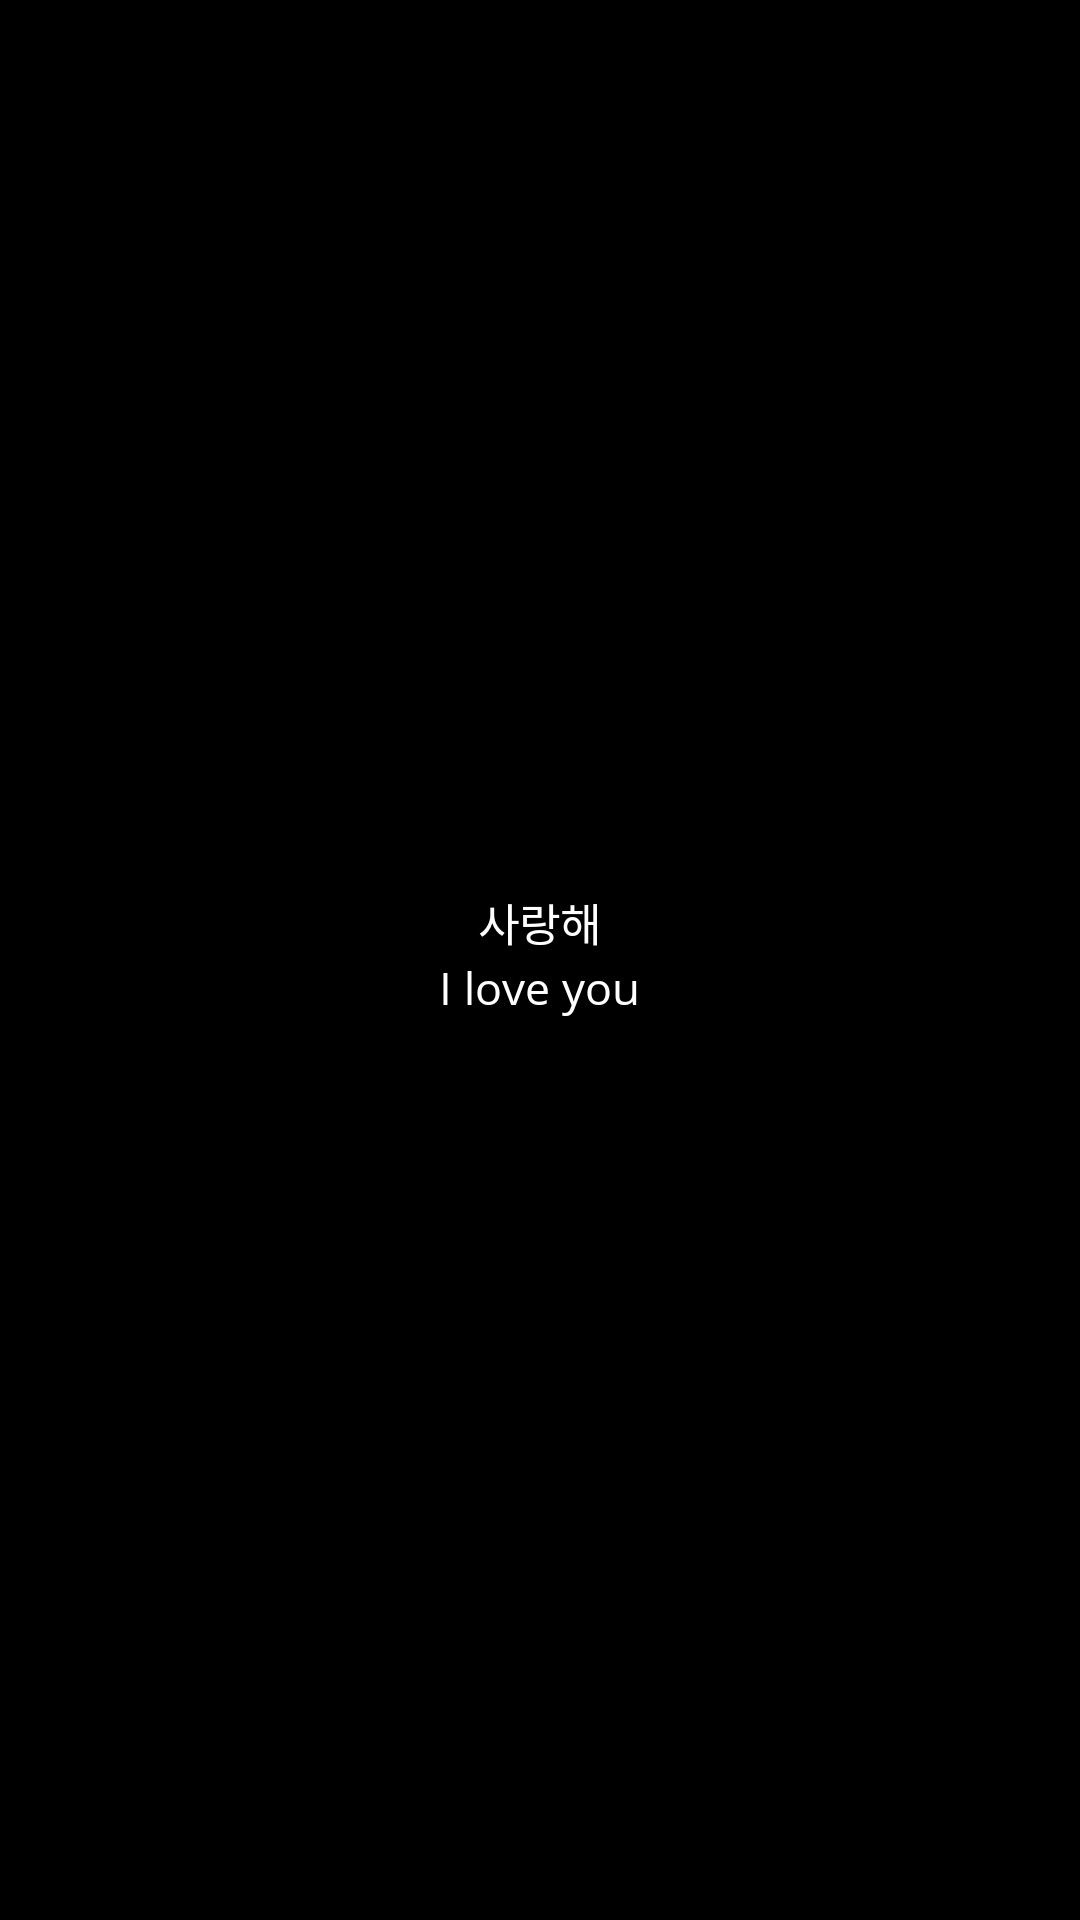 I Love You Saranghae Black Wallpaper Black Aesthetic Wallpaper Black Wallpapers Tumblr Inspirational Quotes Wallpapers